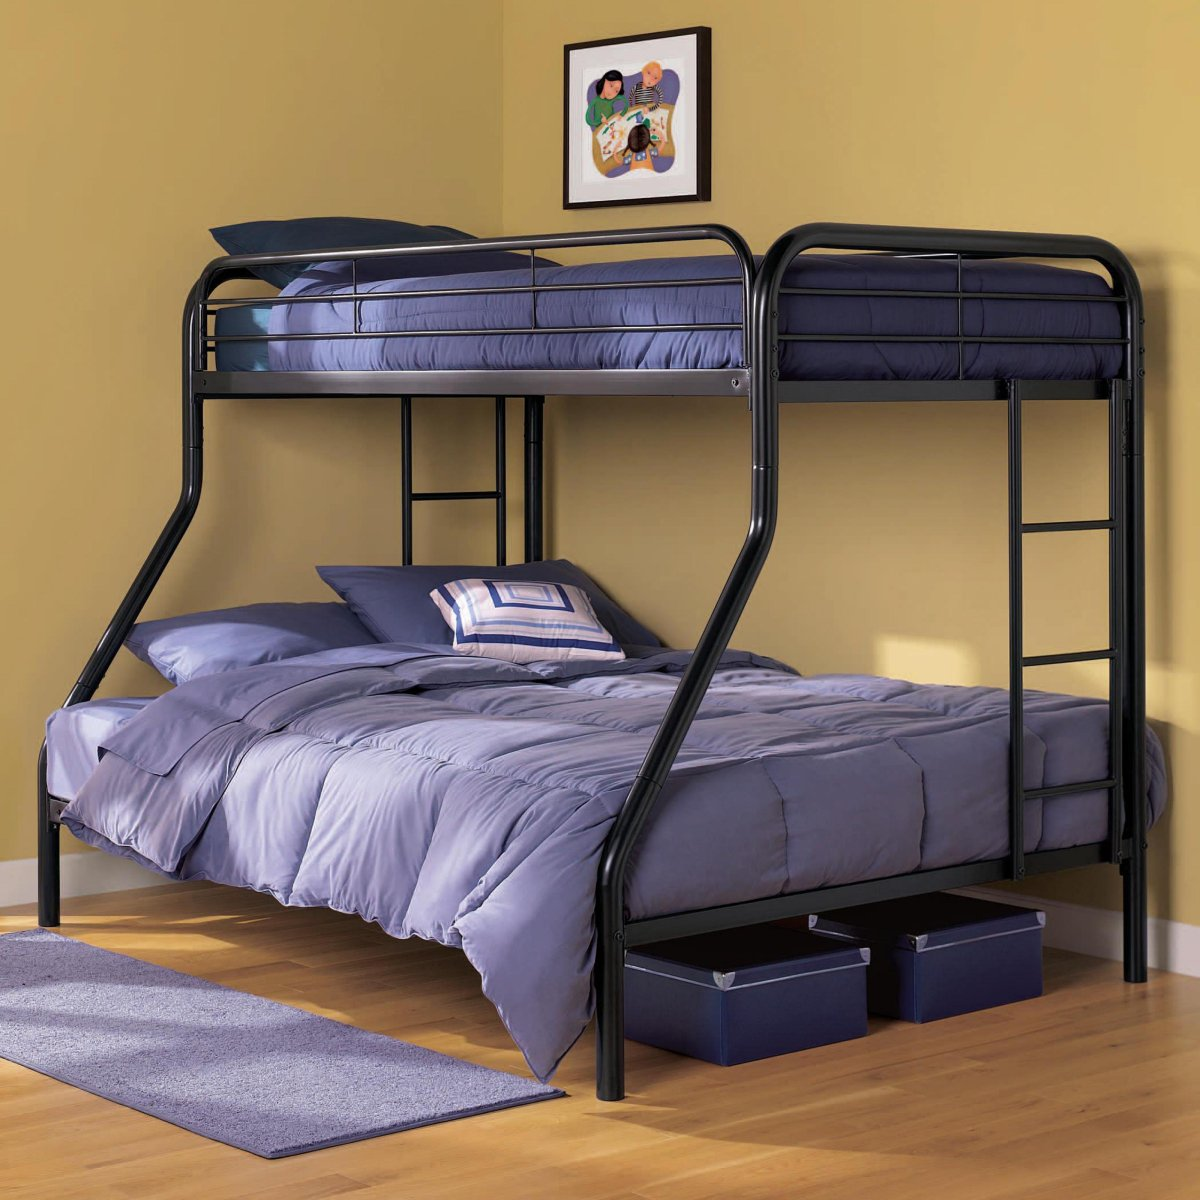 Picture of: Metal Safe Bunk Beds Frittoli Barbara Furniture Ideas Excellent Safe Bunk Beds For Kids